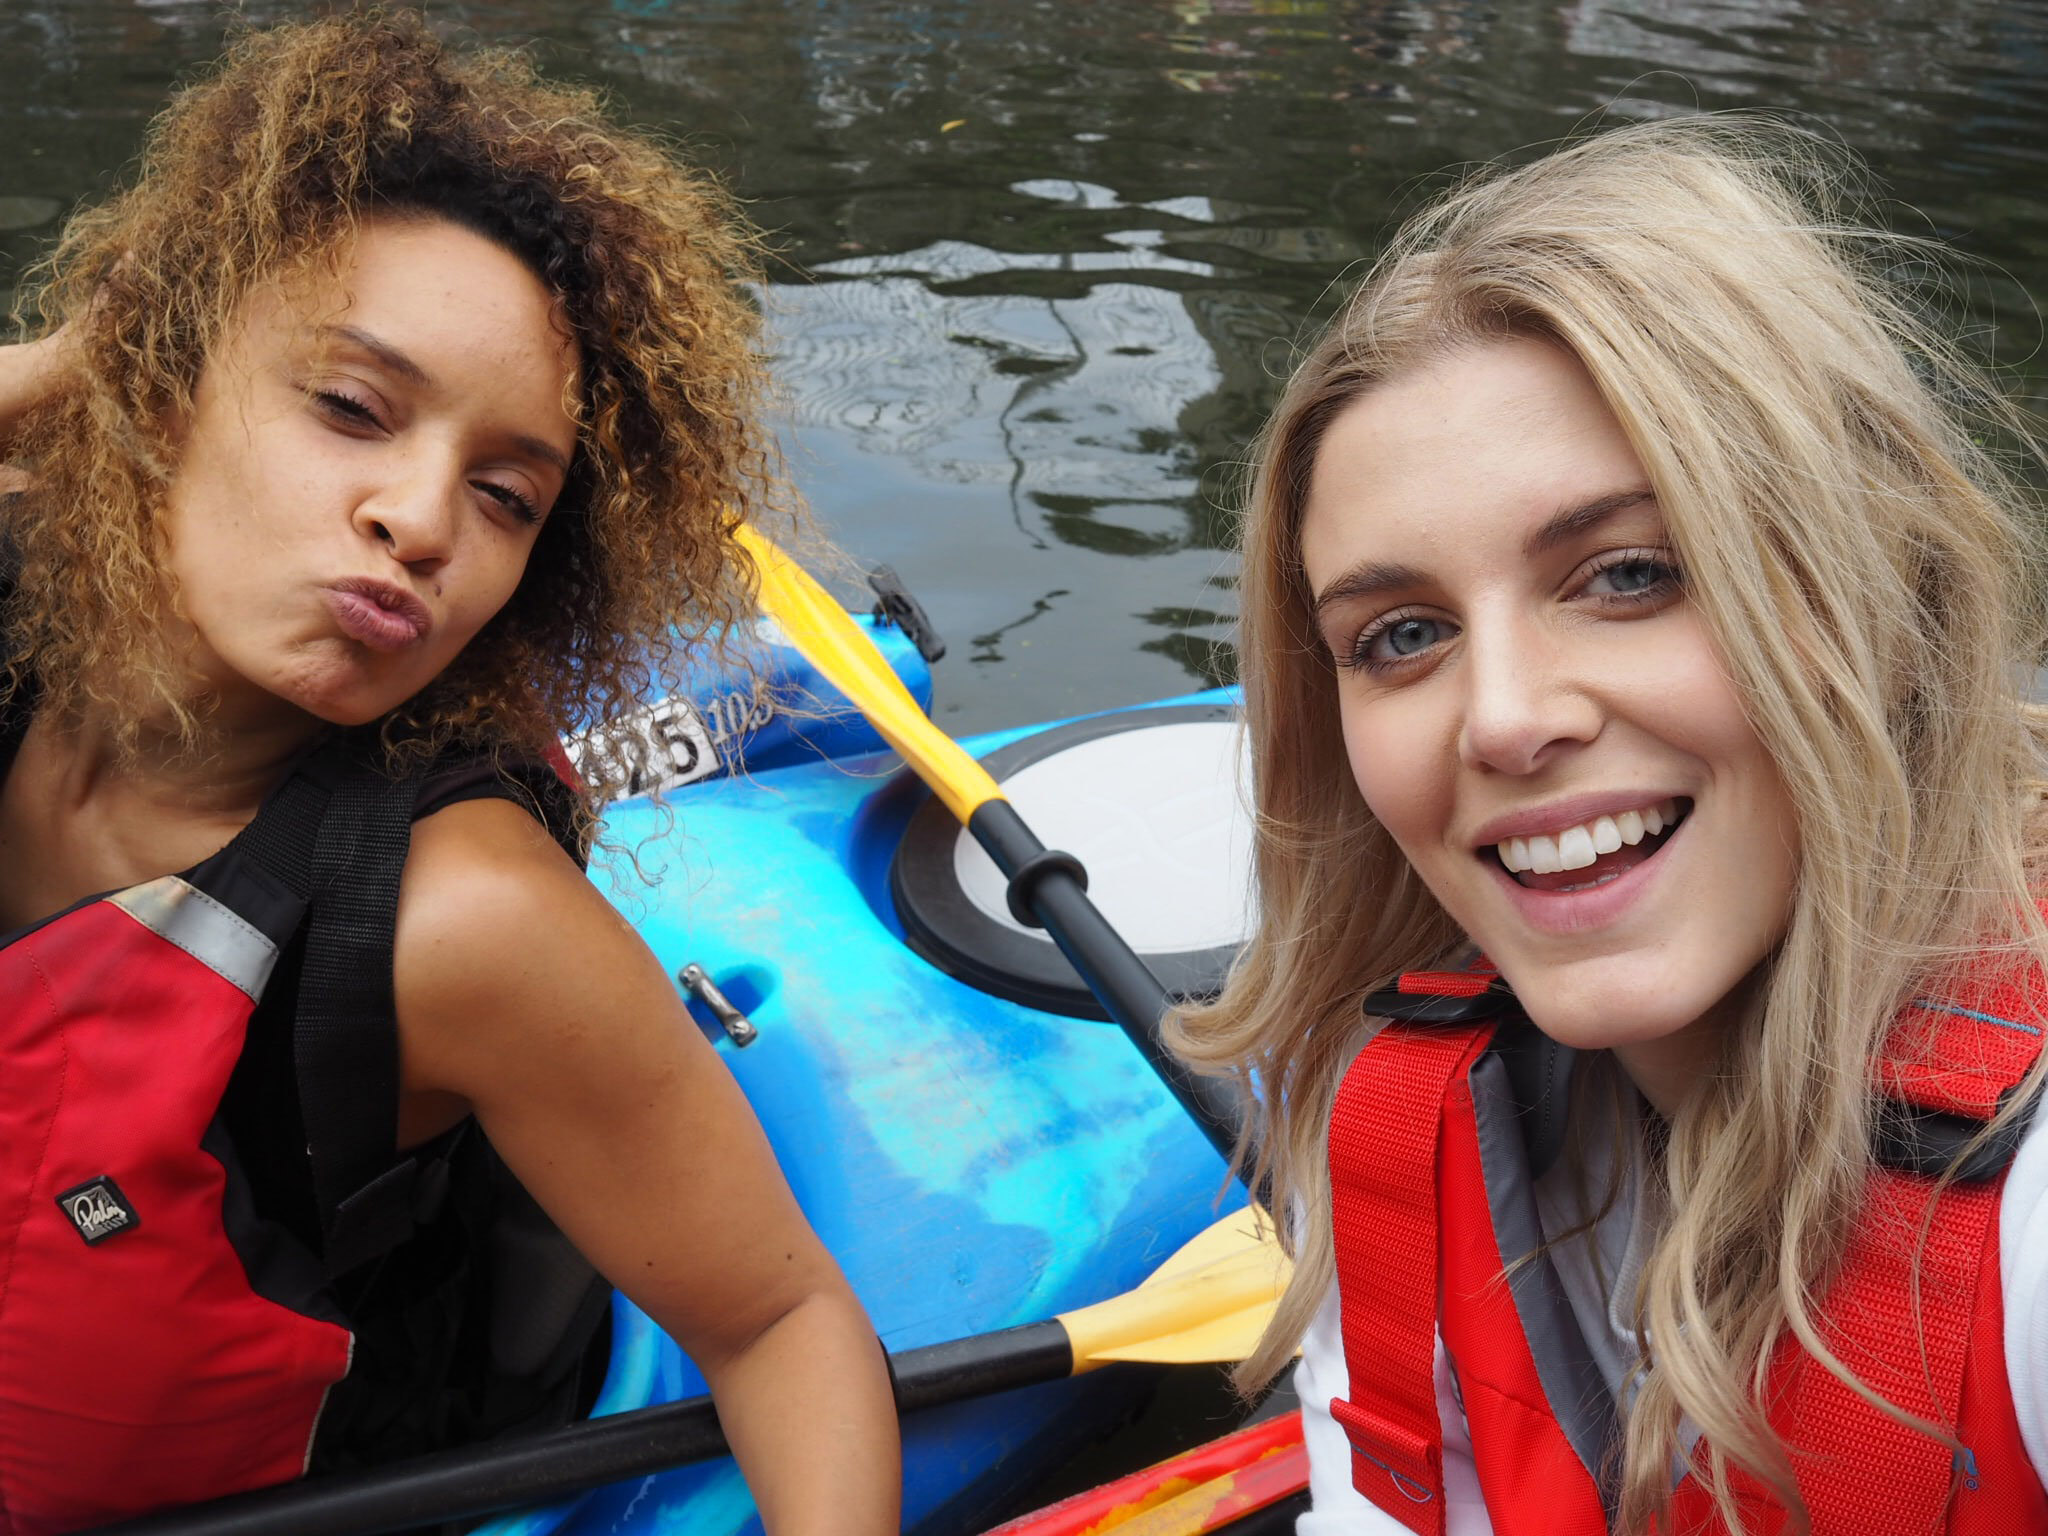 Ashley James Pandora Kayaking London